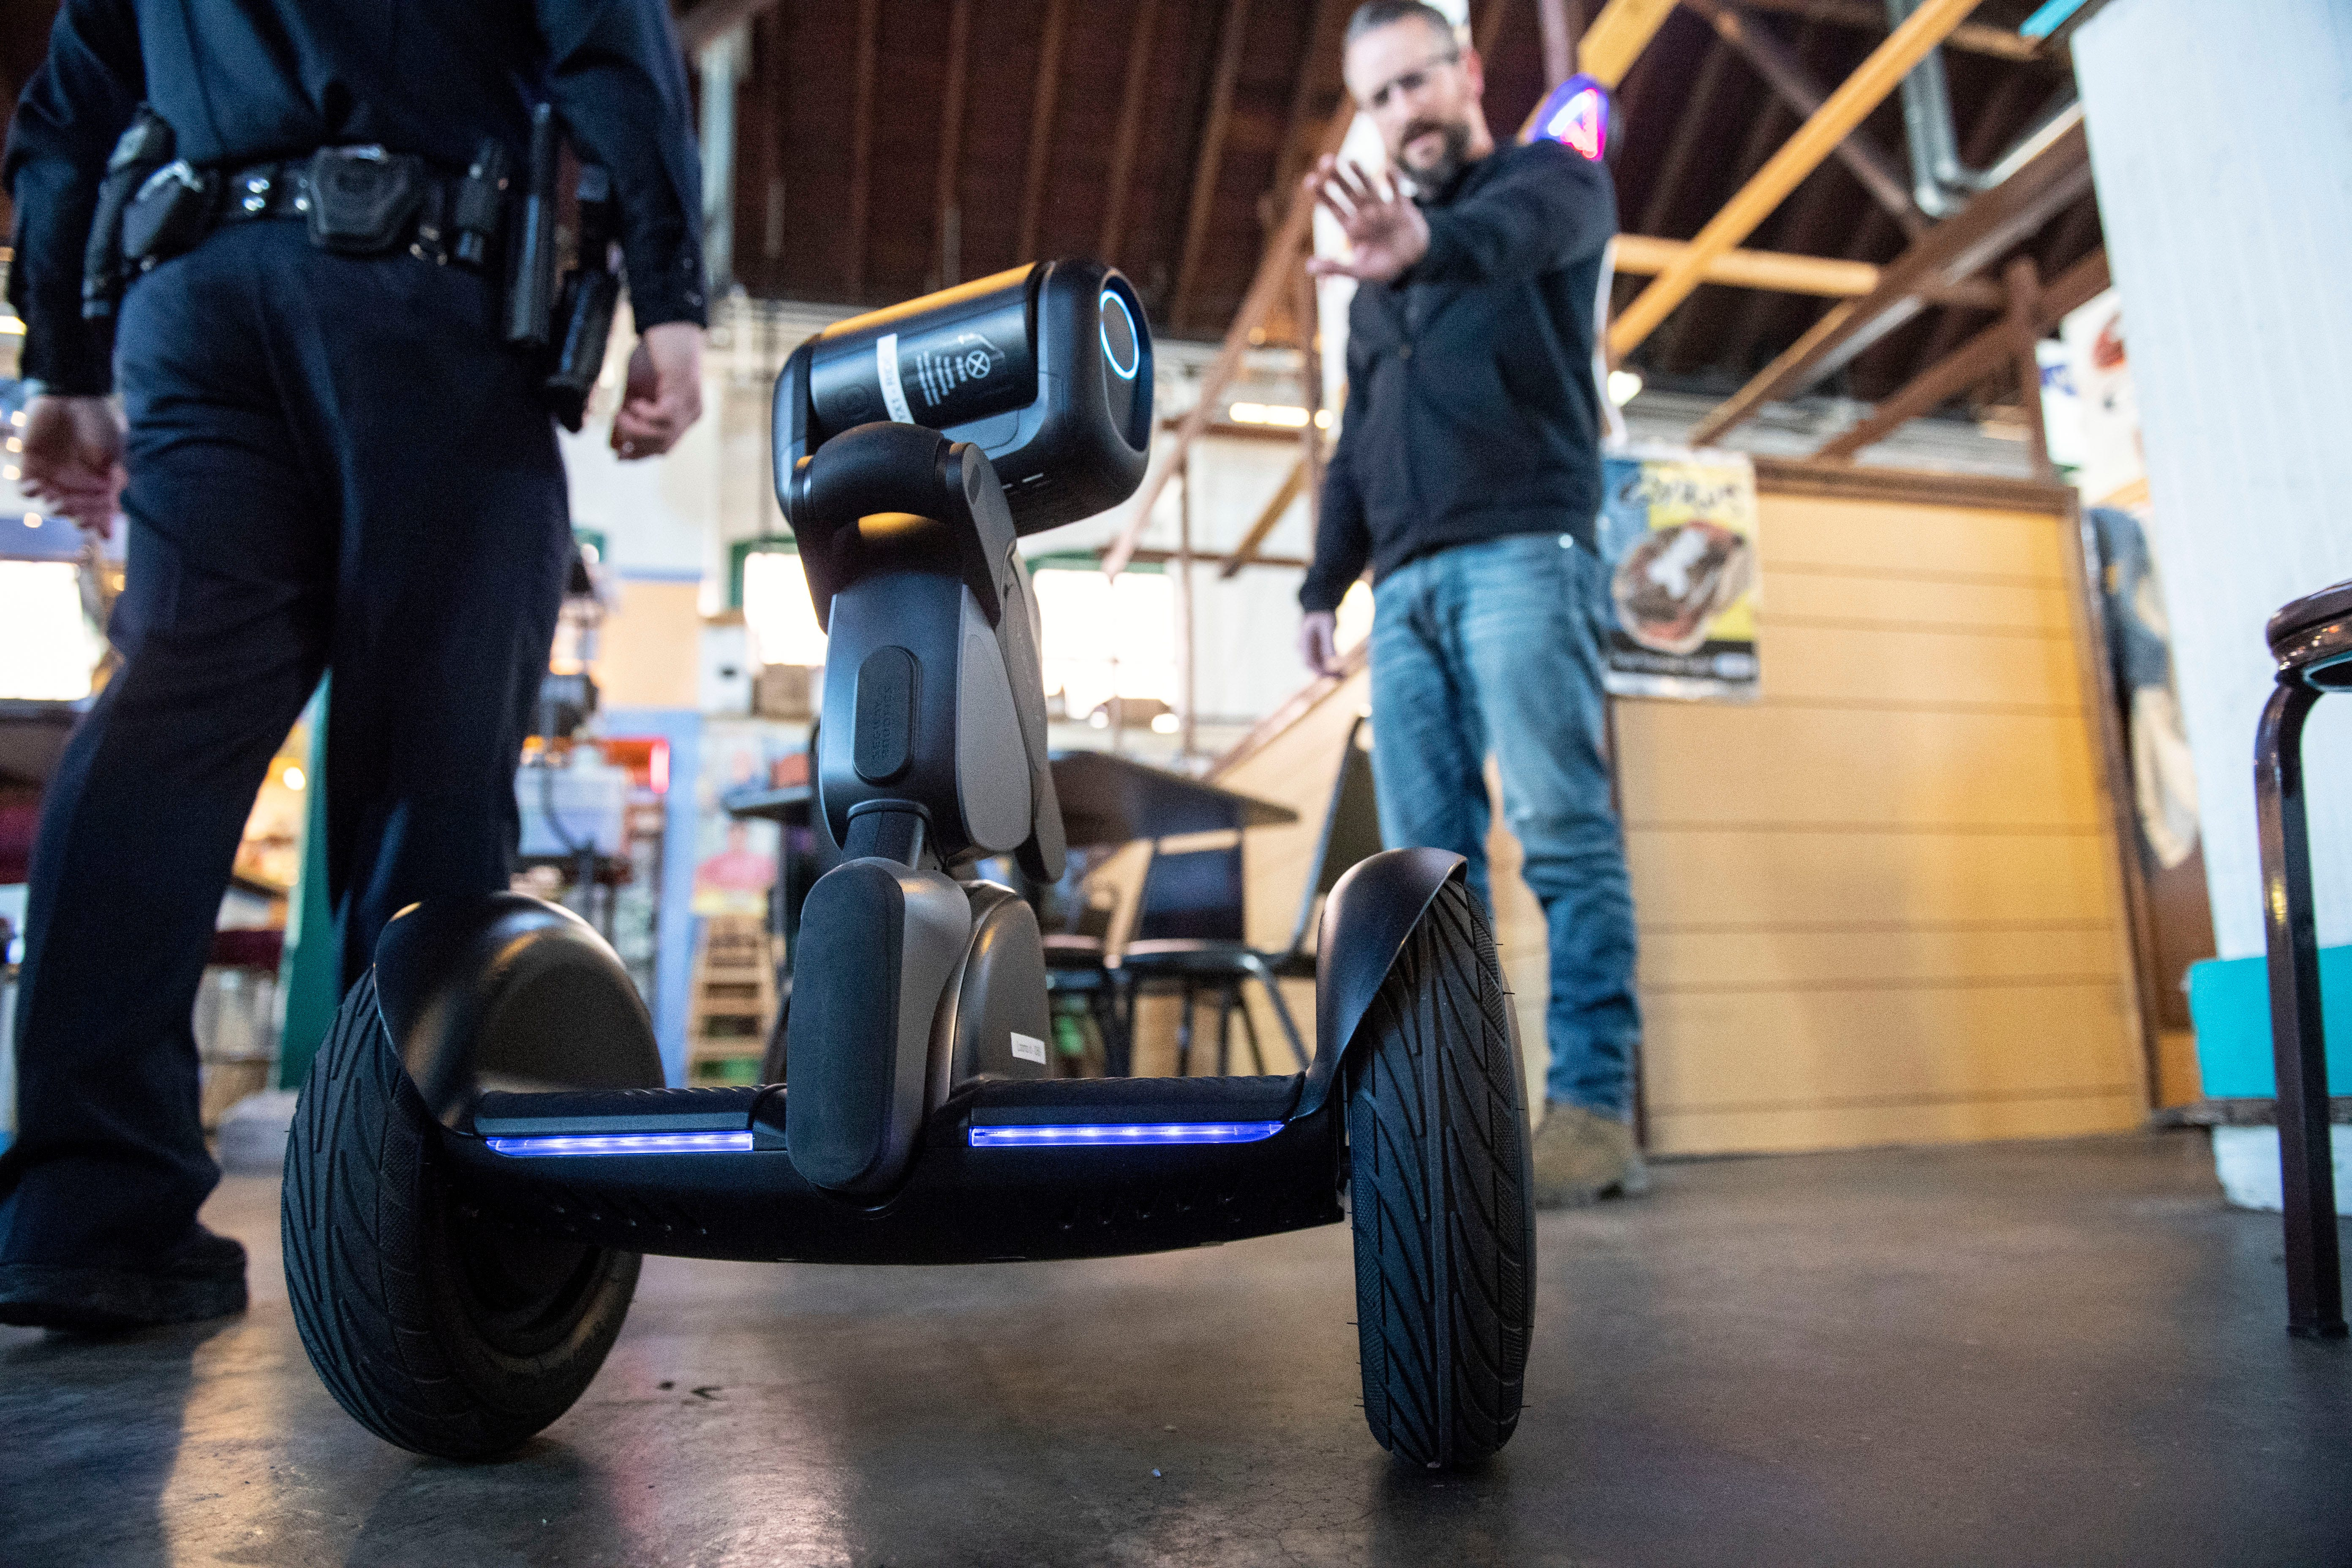 Police robots: Could this help future law enforcement?